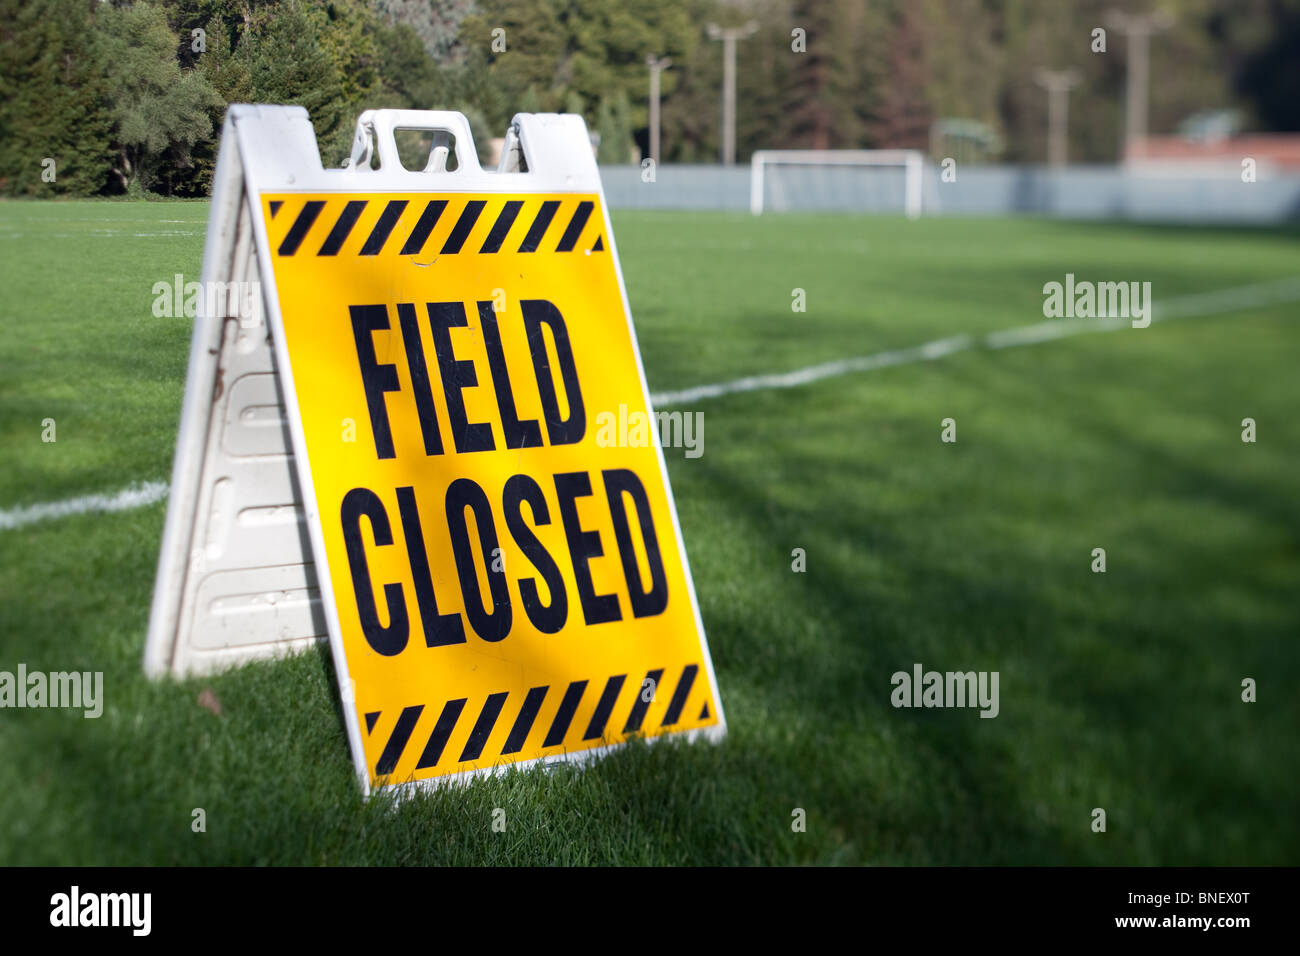 Field closed sign at a sports field. - Stock Image